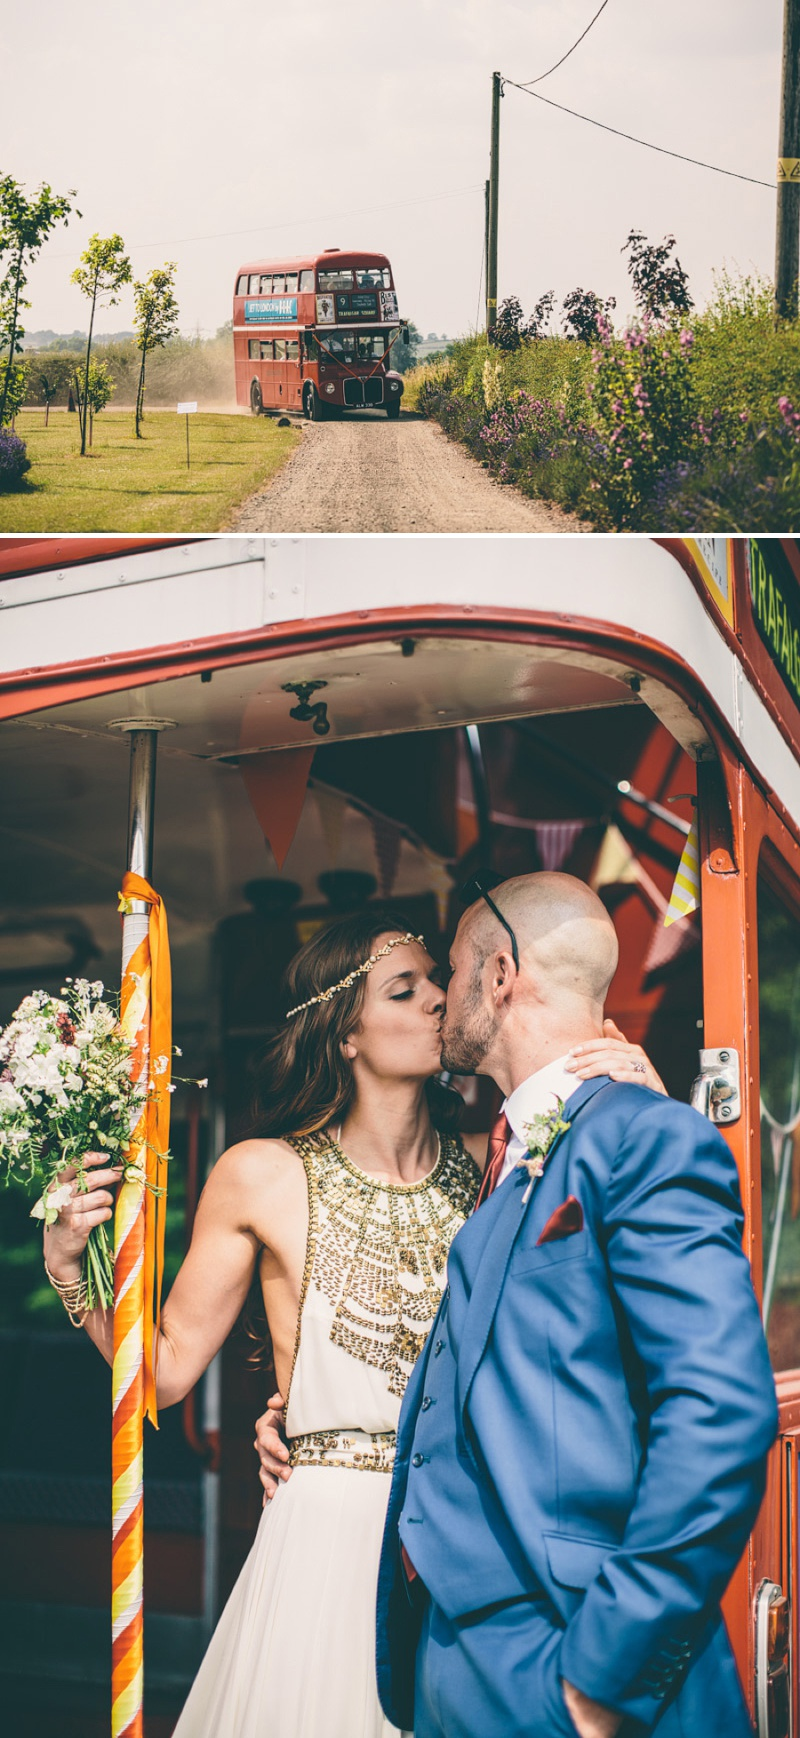 A Maid Marian Festival Inspired Wedding At Glebe Farm With An Amanda Wakeley Cleopatra Dress, Mismatched Bridesmaids And A Vintage Rosie Weisencrantz Headpiece._0009